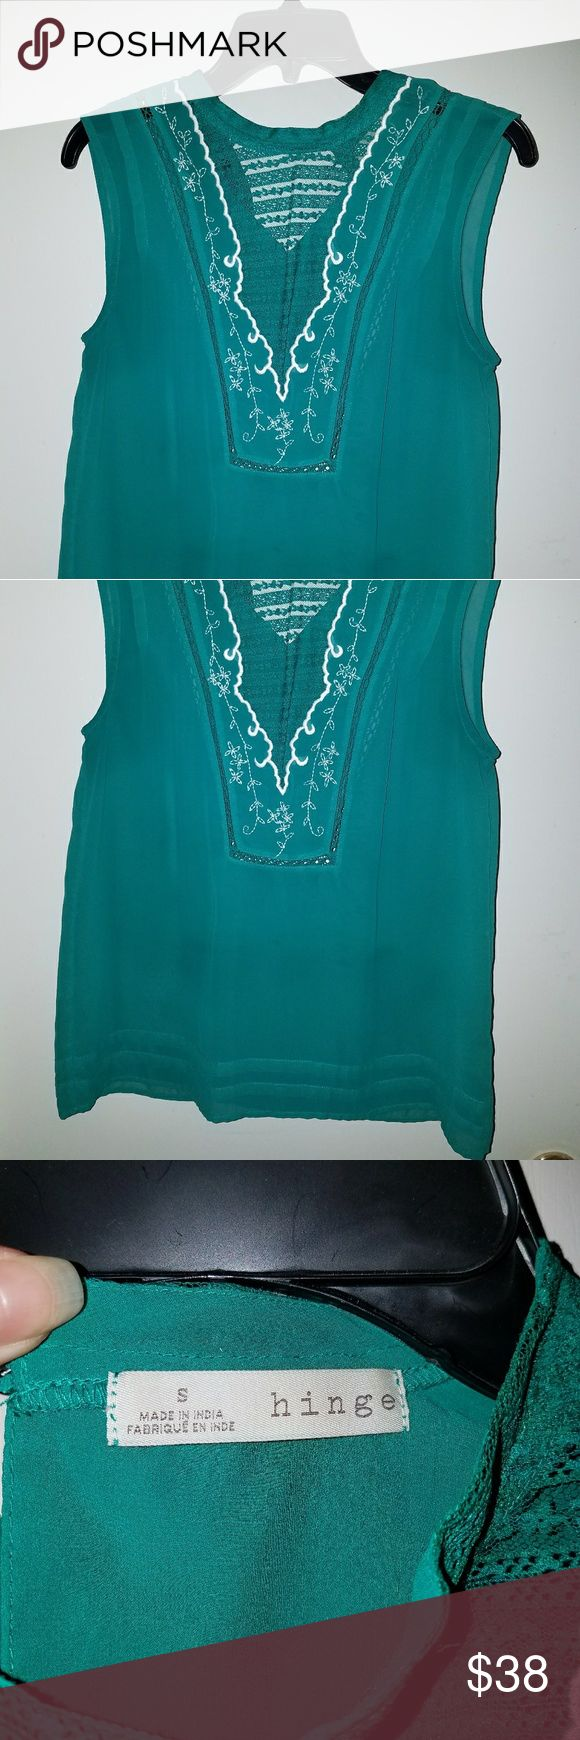 *50% OFF SALE* Hinge Turquoise Blouse Beautiful, unique blouse with DETAILED embroidery! I've never seen another top quite like this. Only worn a few times. Classy and elegant. 100% Polyester. Can be washed in machine with like colors. Tops Blouses